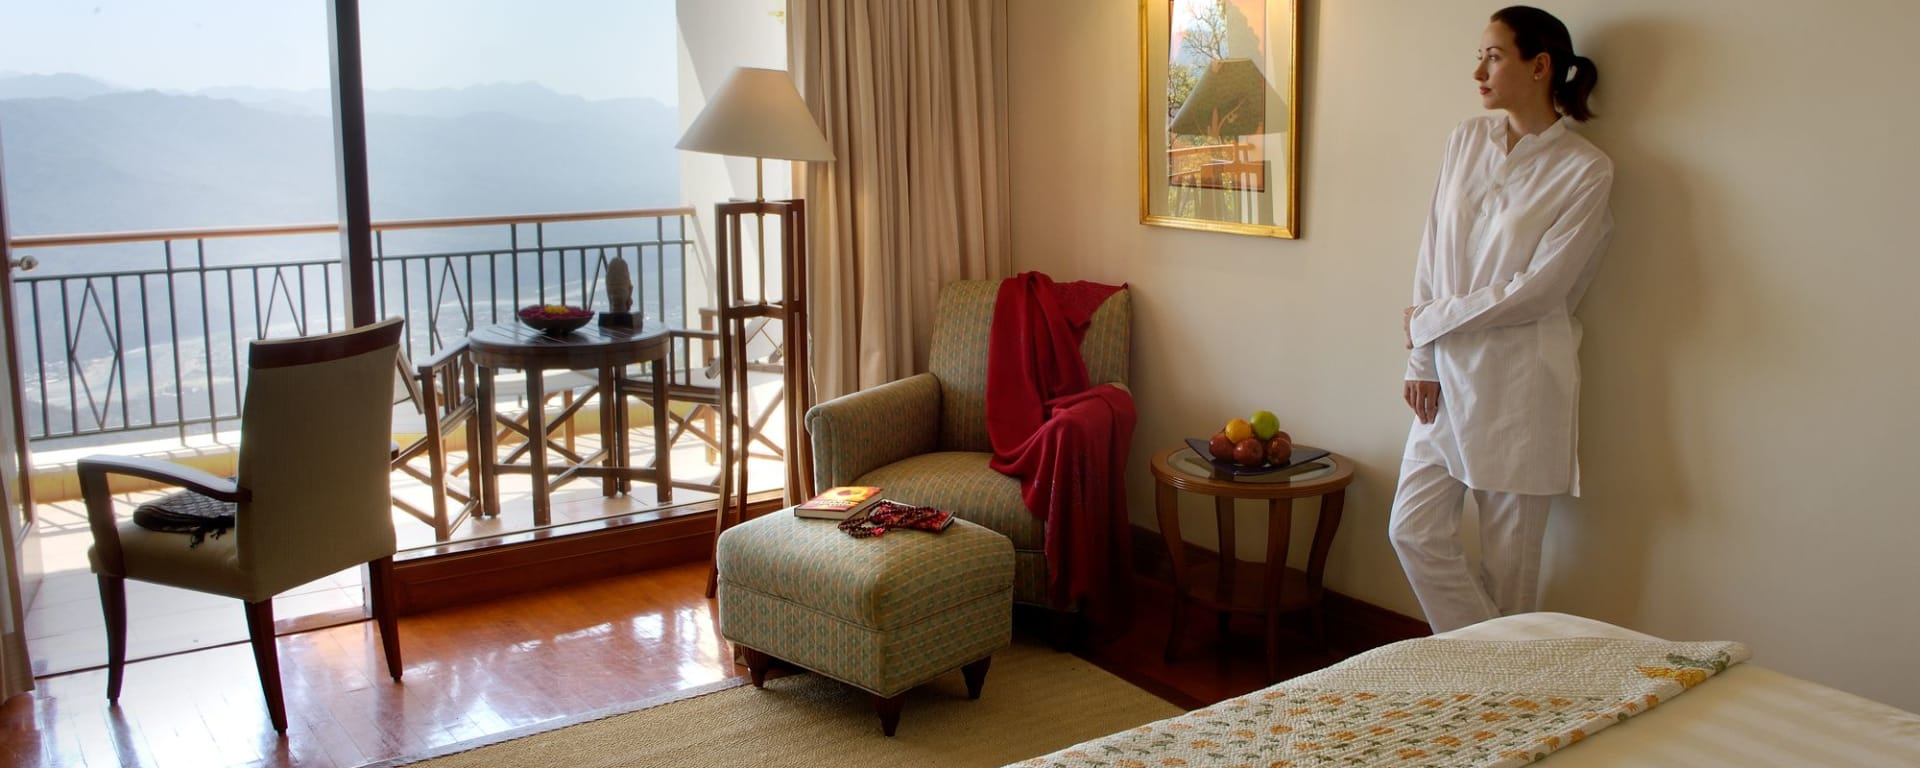 Ananda In The Himalayas in Rishikesh: Valley View Room & Balcony